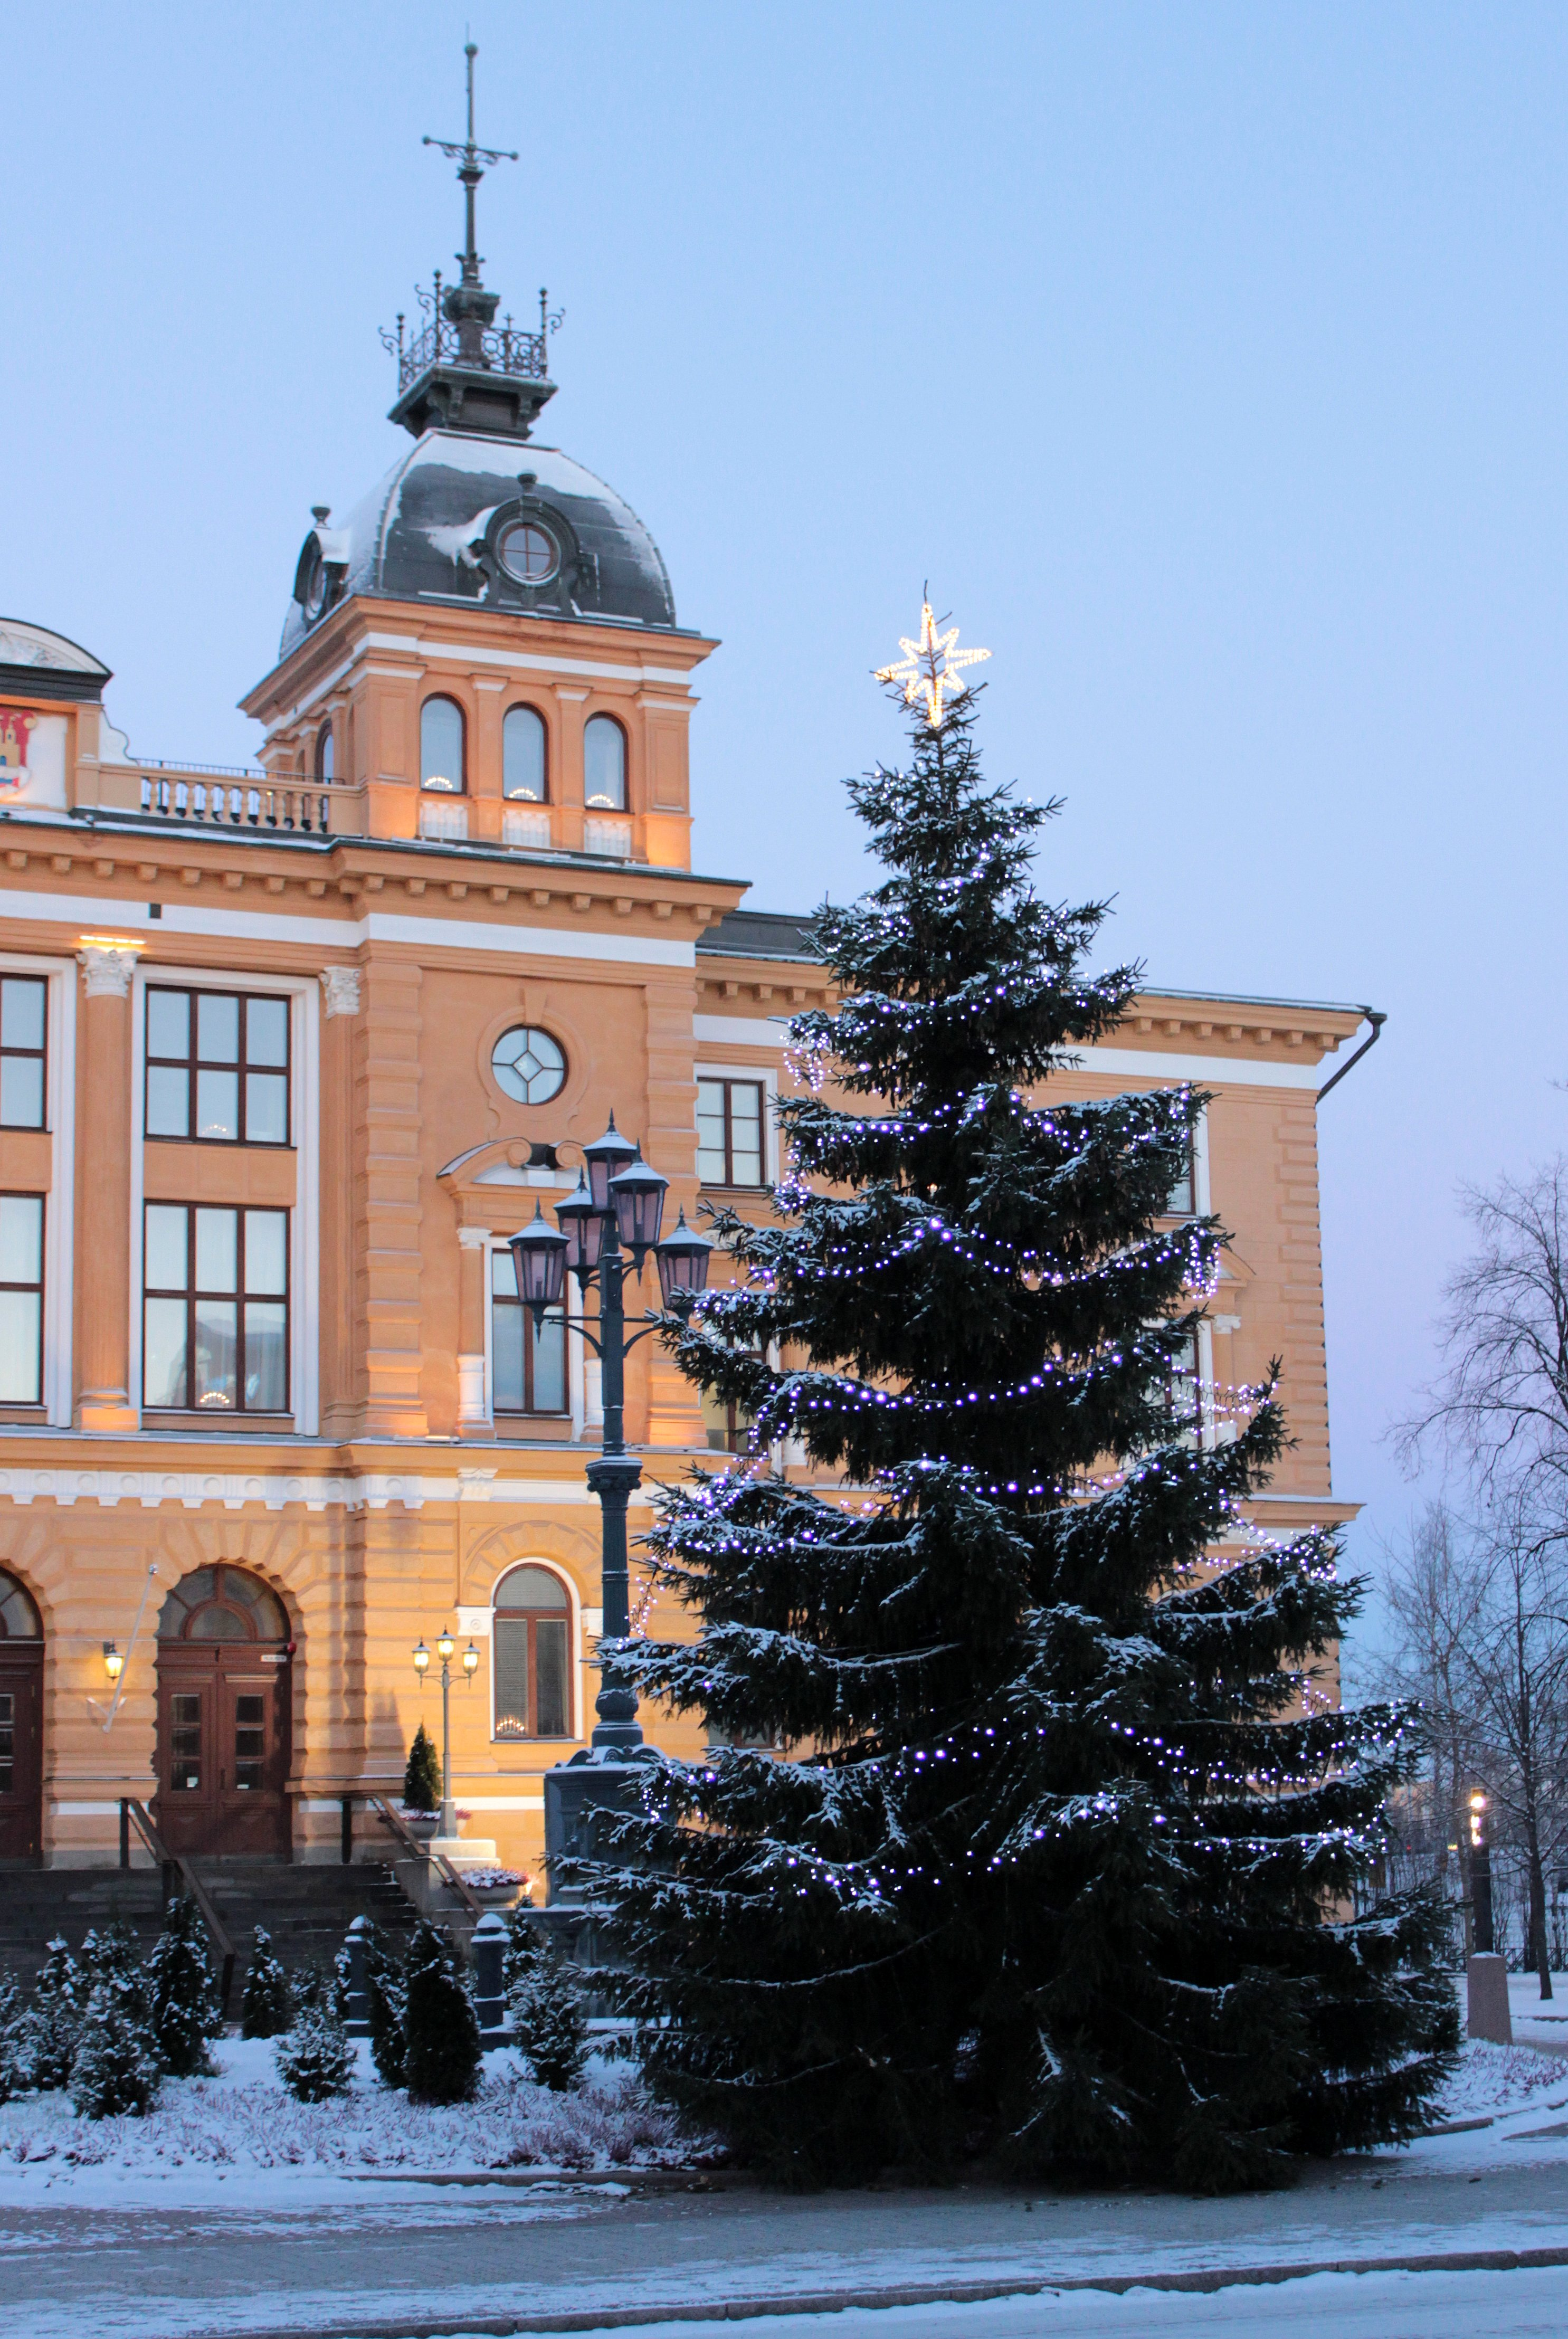 Christmas tree decorated with Christmas lights outside the Oulu town hall. Photo taken on December 6, 2012.